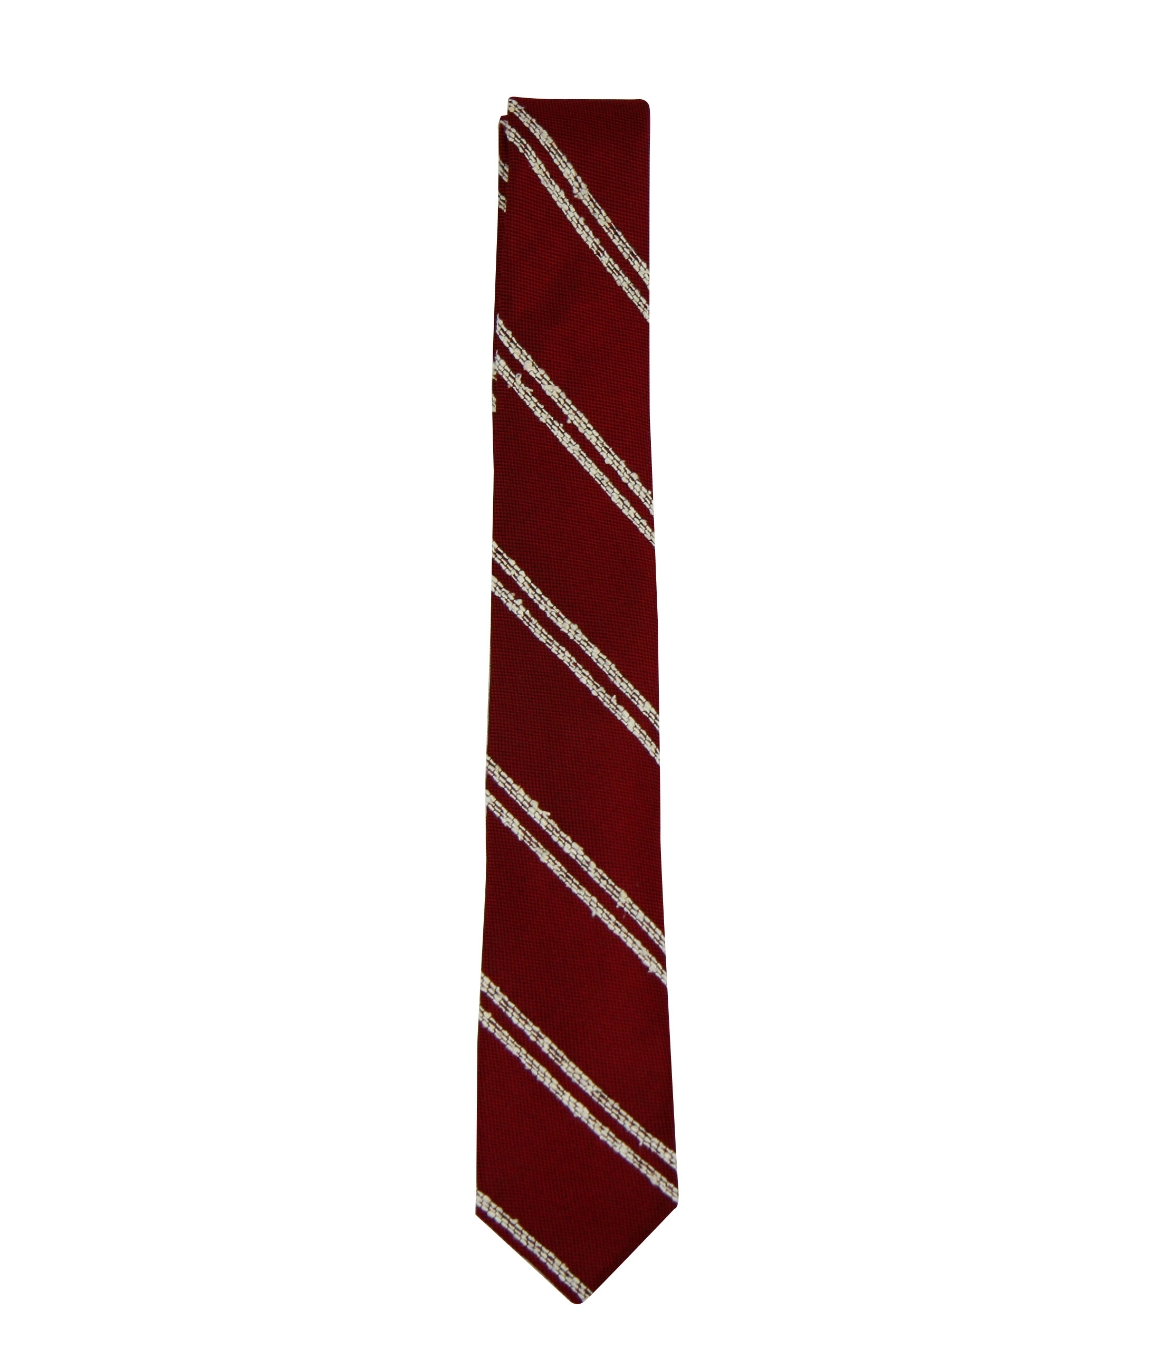 Gitman Brothers, NARLY STRIPE 2-3/4 INCH TIE, Red, Number 1